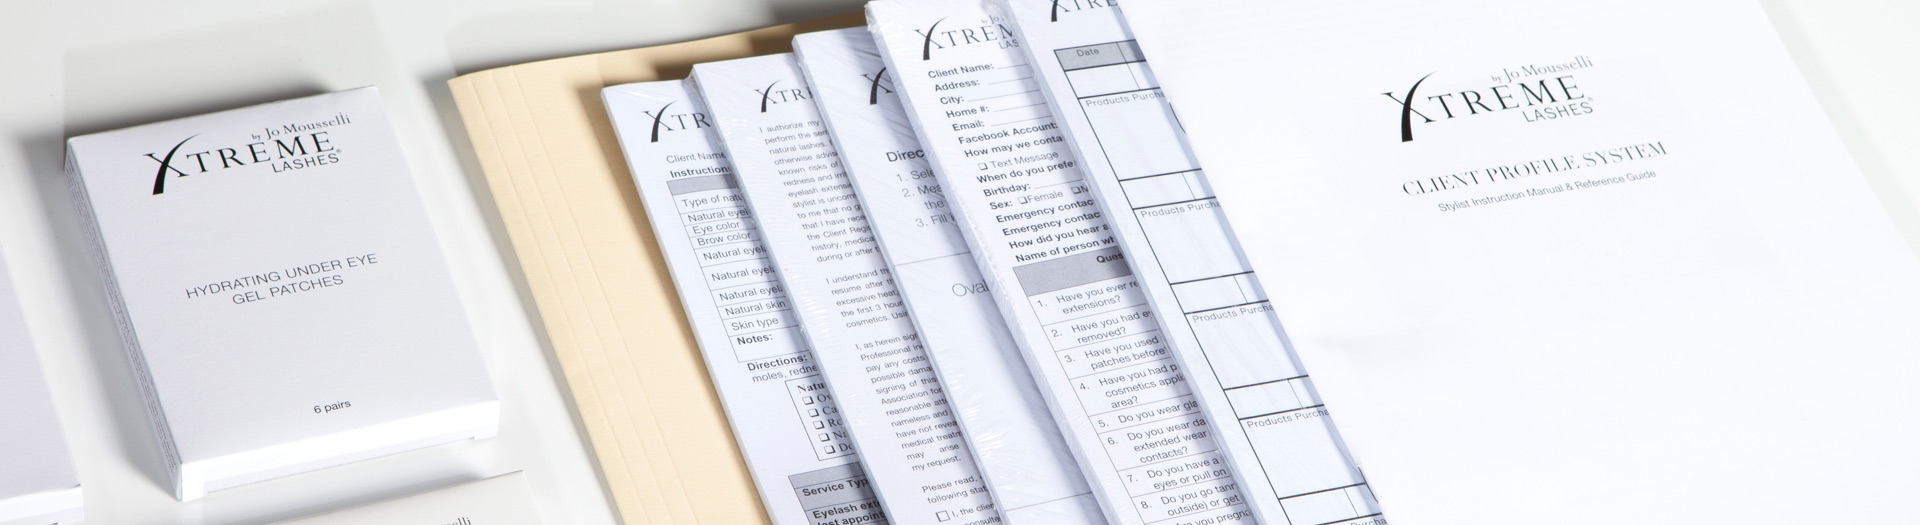 Record Keeping Forms